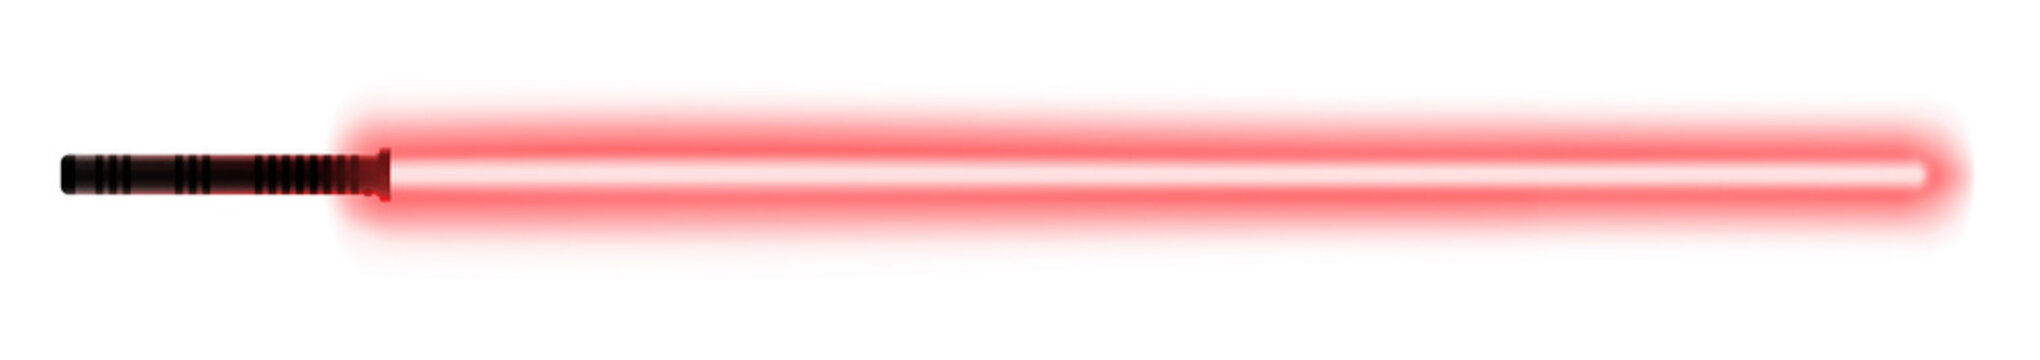 Glowing light sword. Laser saber melee weapon for taking a close fights during a war among the stars.